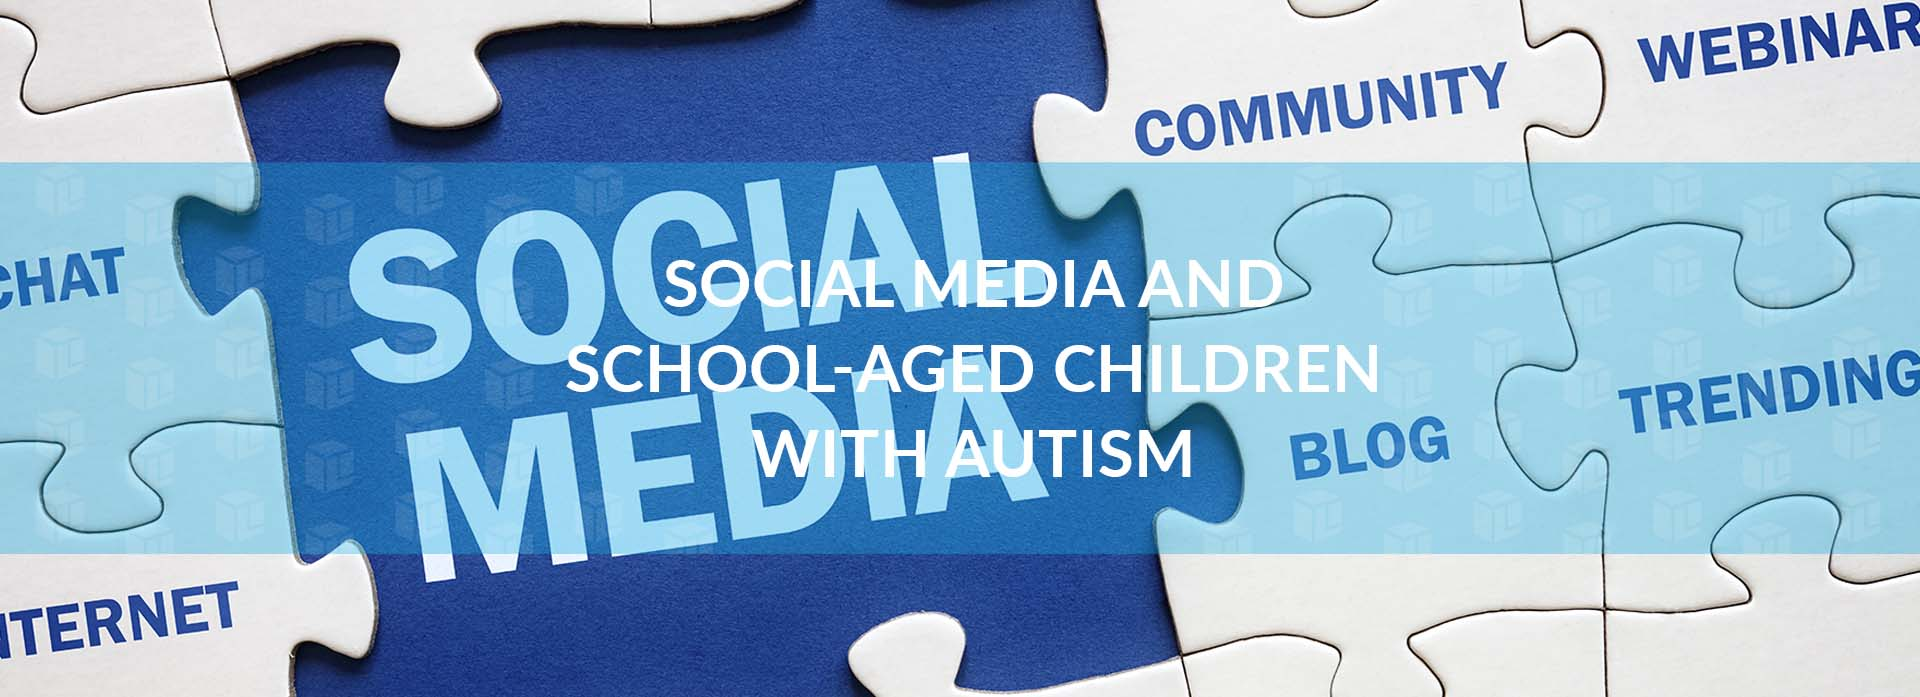 Social Media And School-Aged Children